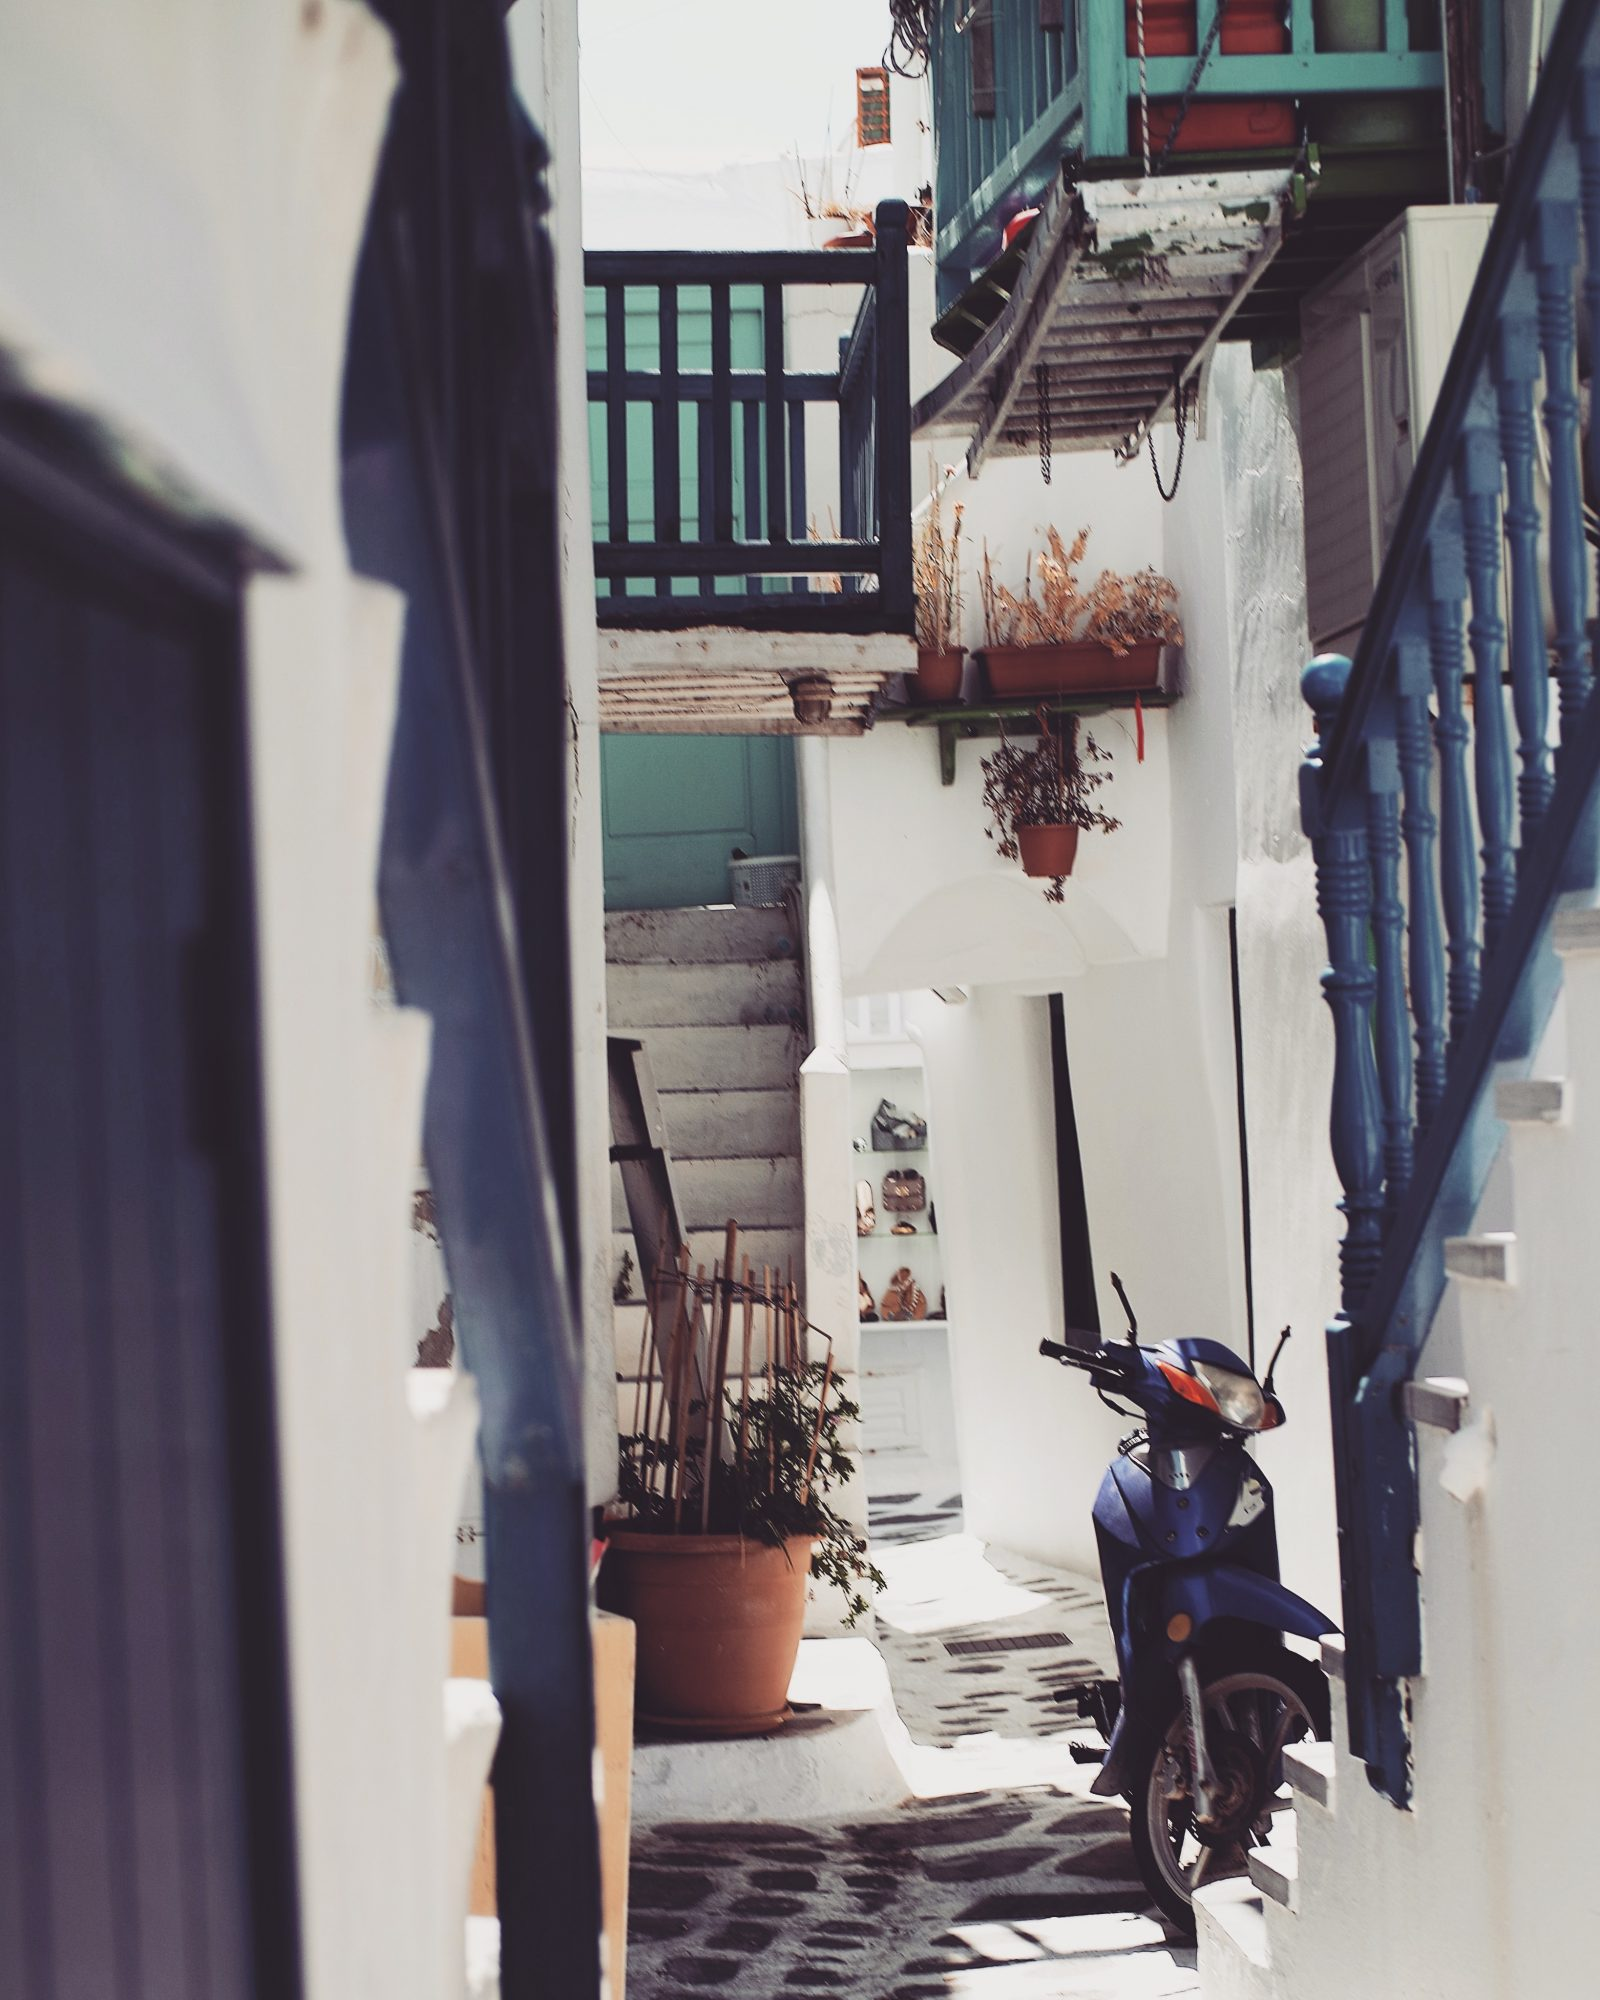 Tasting The Delights of Mykonos with Starling Bank